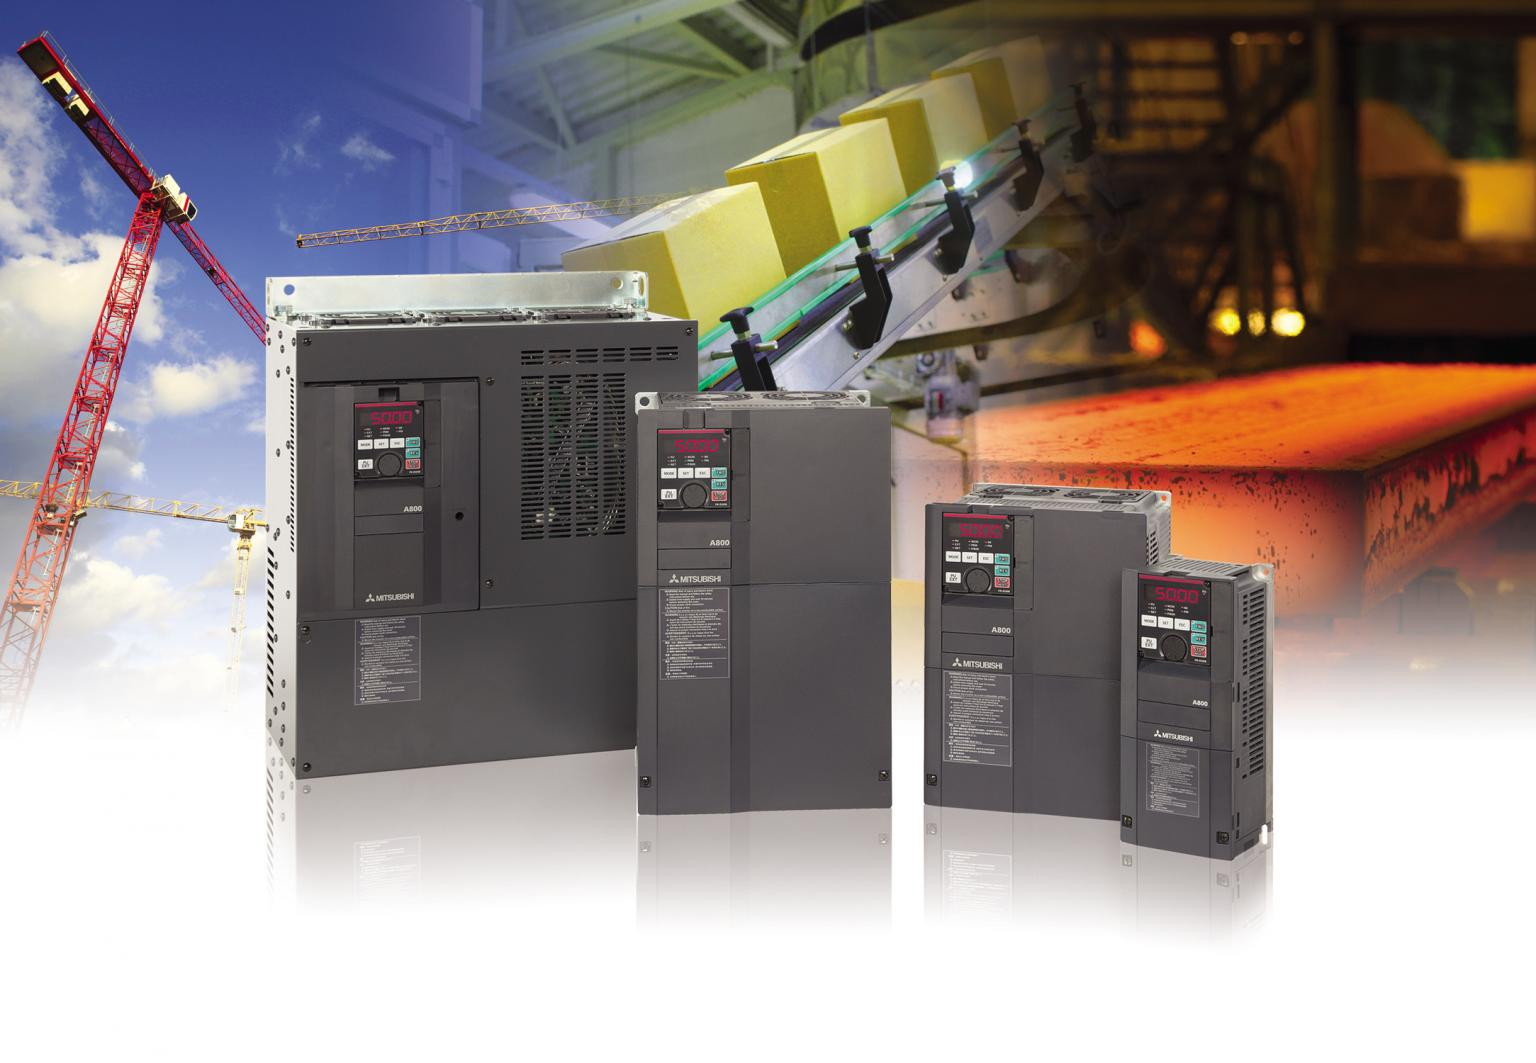 With the FR-A800 series of drives, Mitsubishi Electric introduces its very latest drive technology with an output range extending from 750 watts up to a maximum of 1 megawatt. Source: Mitsubishi Electric Europe BV Automation Systems Division, UK